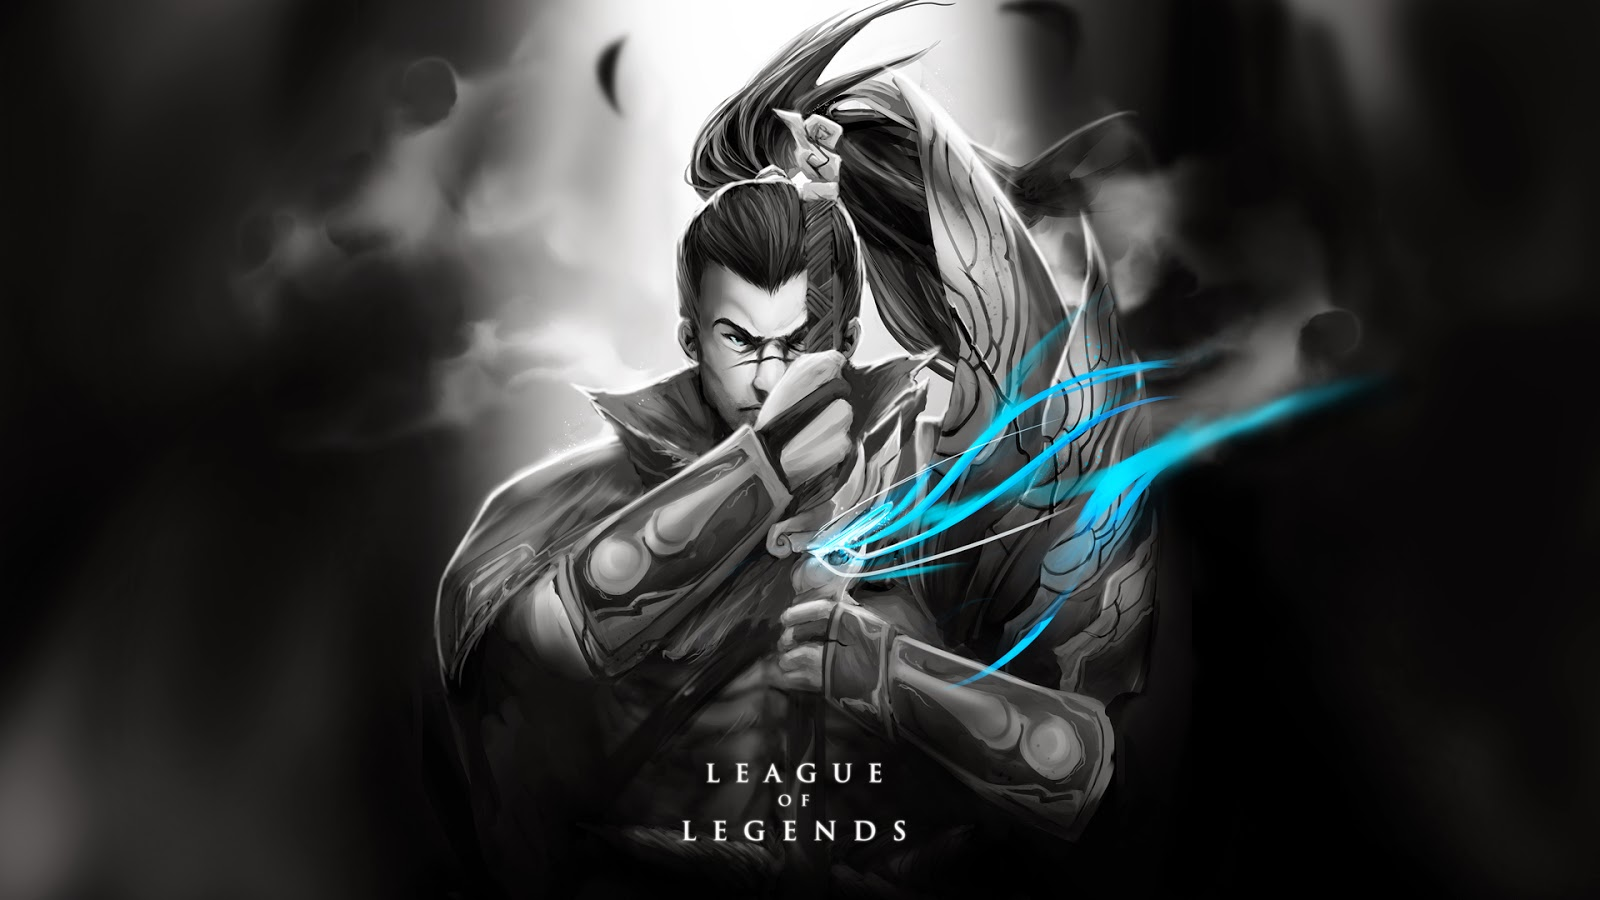 Yasuo League of Legends WallpaperYasuo League Of Legends